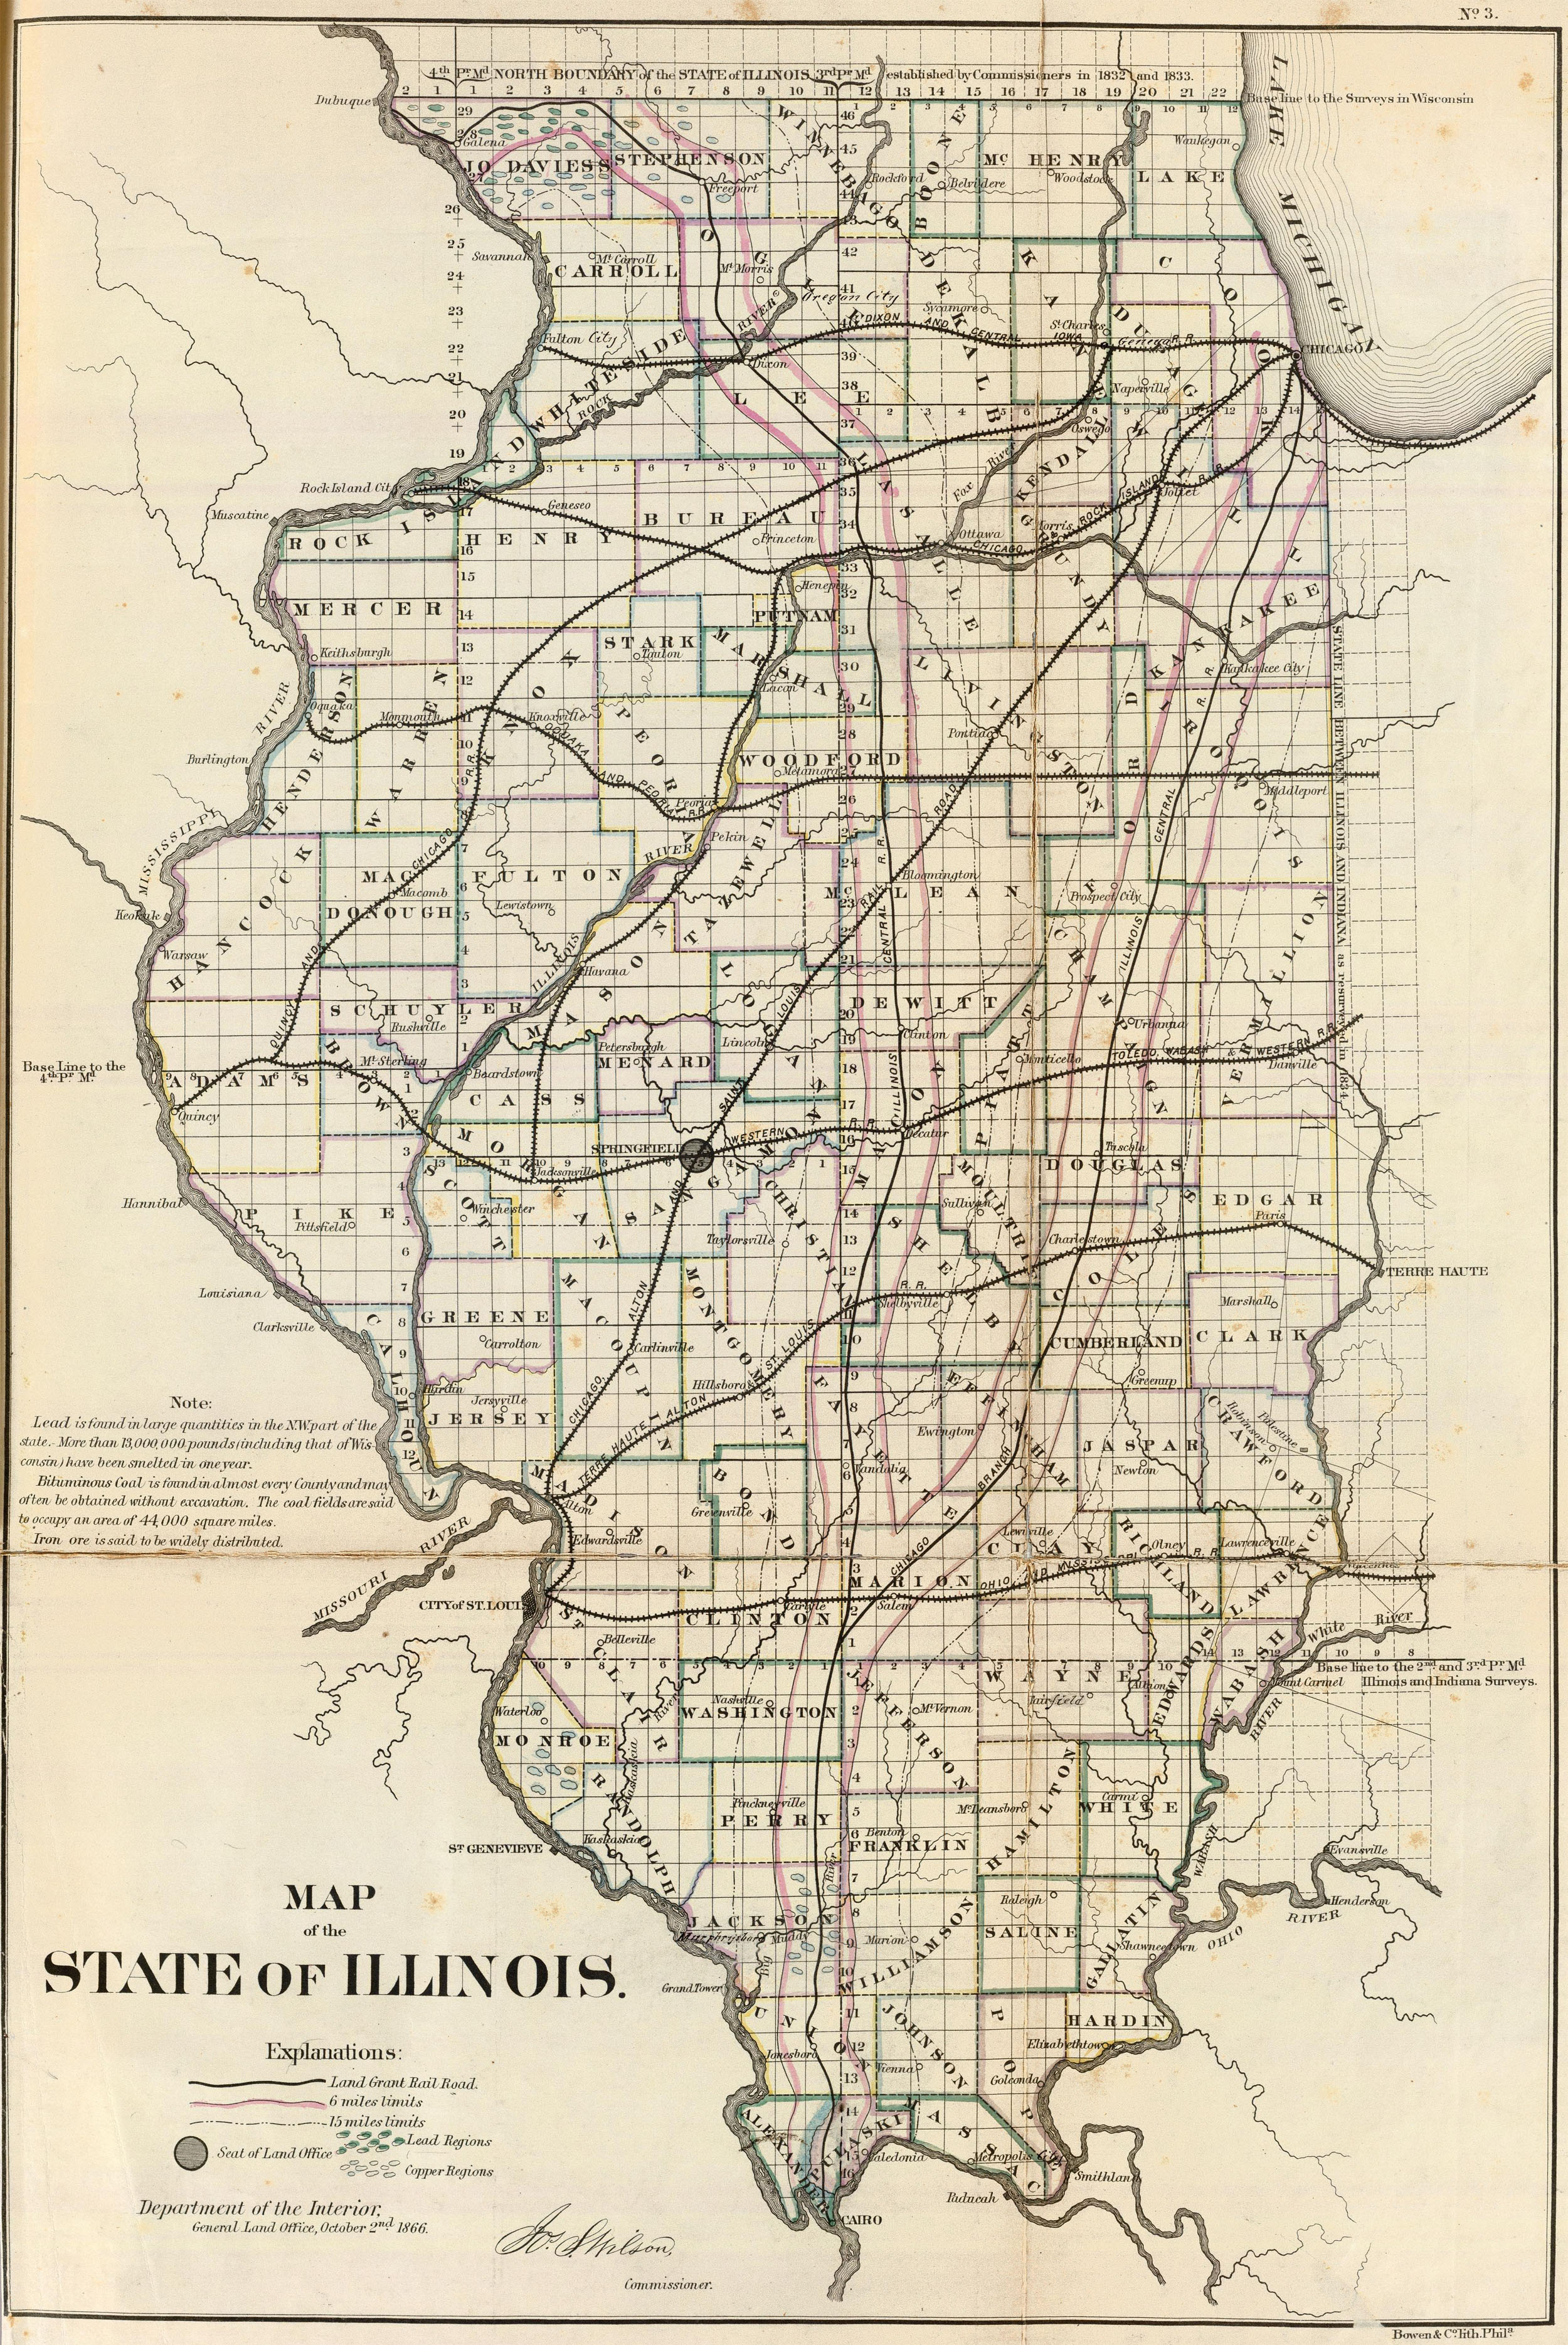 Old Historical City, County and State Maps of Illinios on illinois counties, alaska map with cities, illinois zip code map, map of illinois cities, map of germany with cities, map of norway with cities, map of europe with cities, map of texas with cities, louisiana parish map with cities, il state map with cities, illinois township map, map of pennsylvania with cities, bosnia map with cities, map of the philippines with cities, map of united states with cities, map of canada with cities, oklahoma map with all cities, map of china with cities, india map with cities,